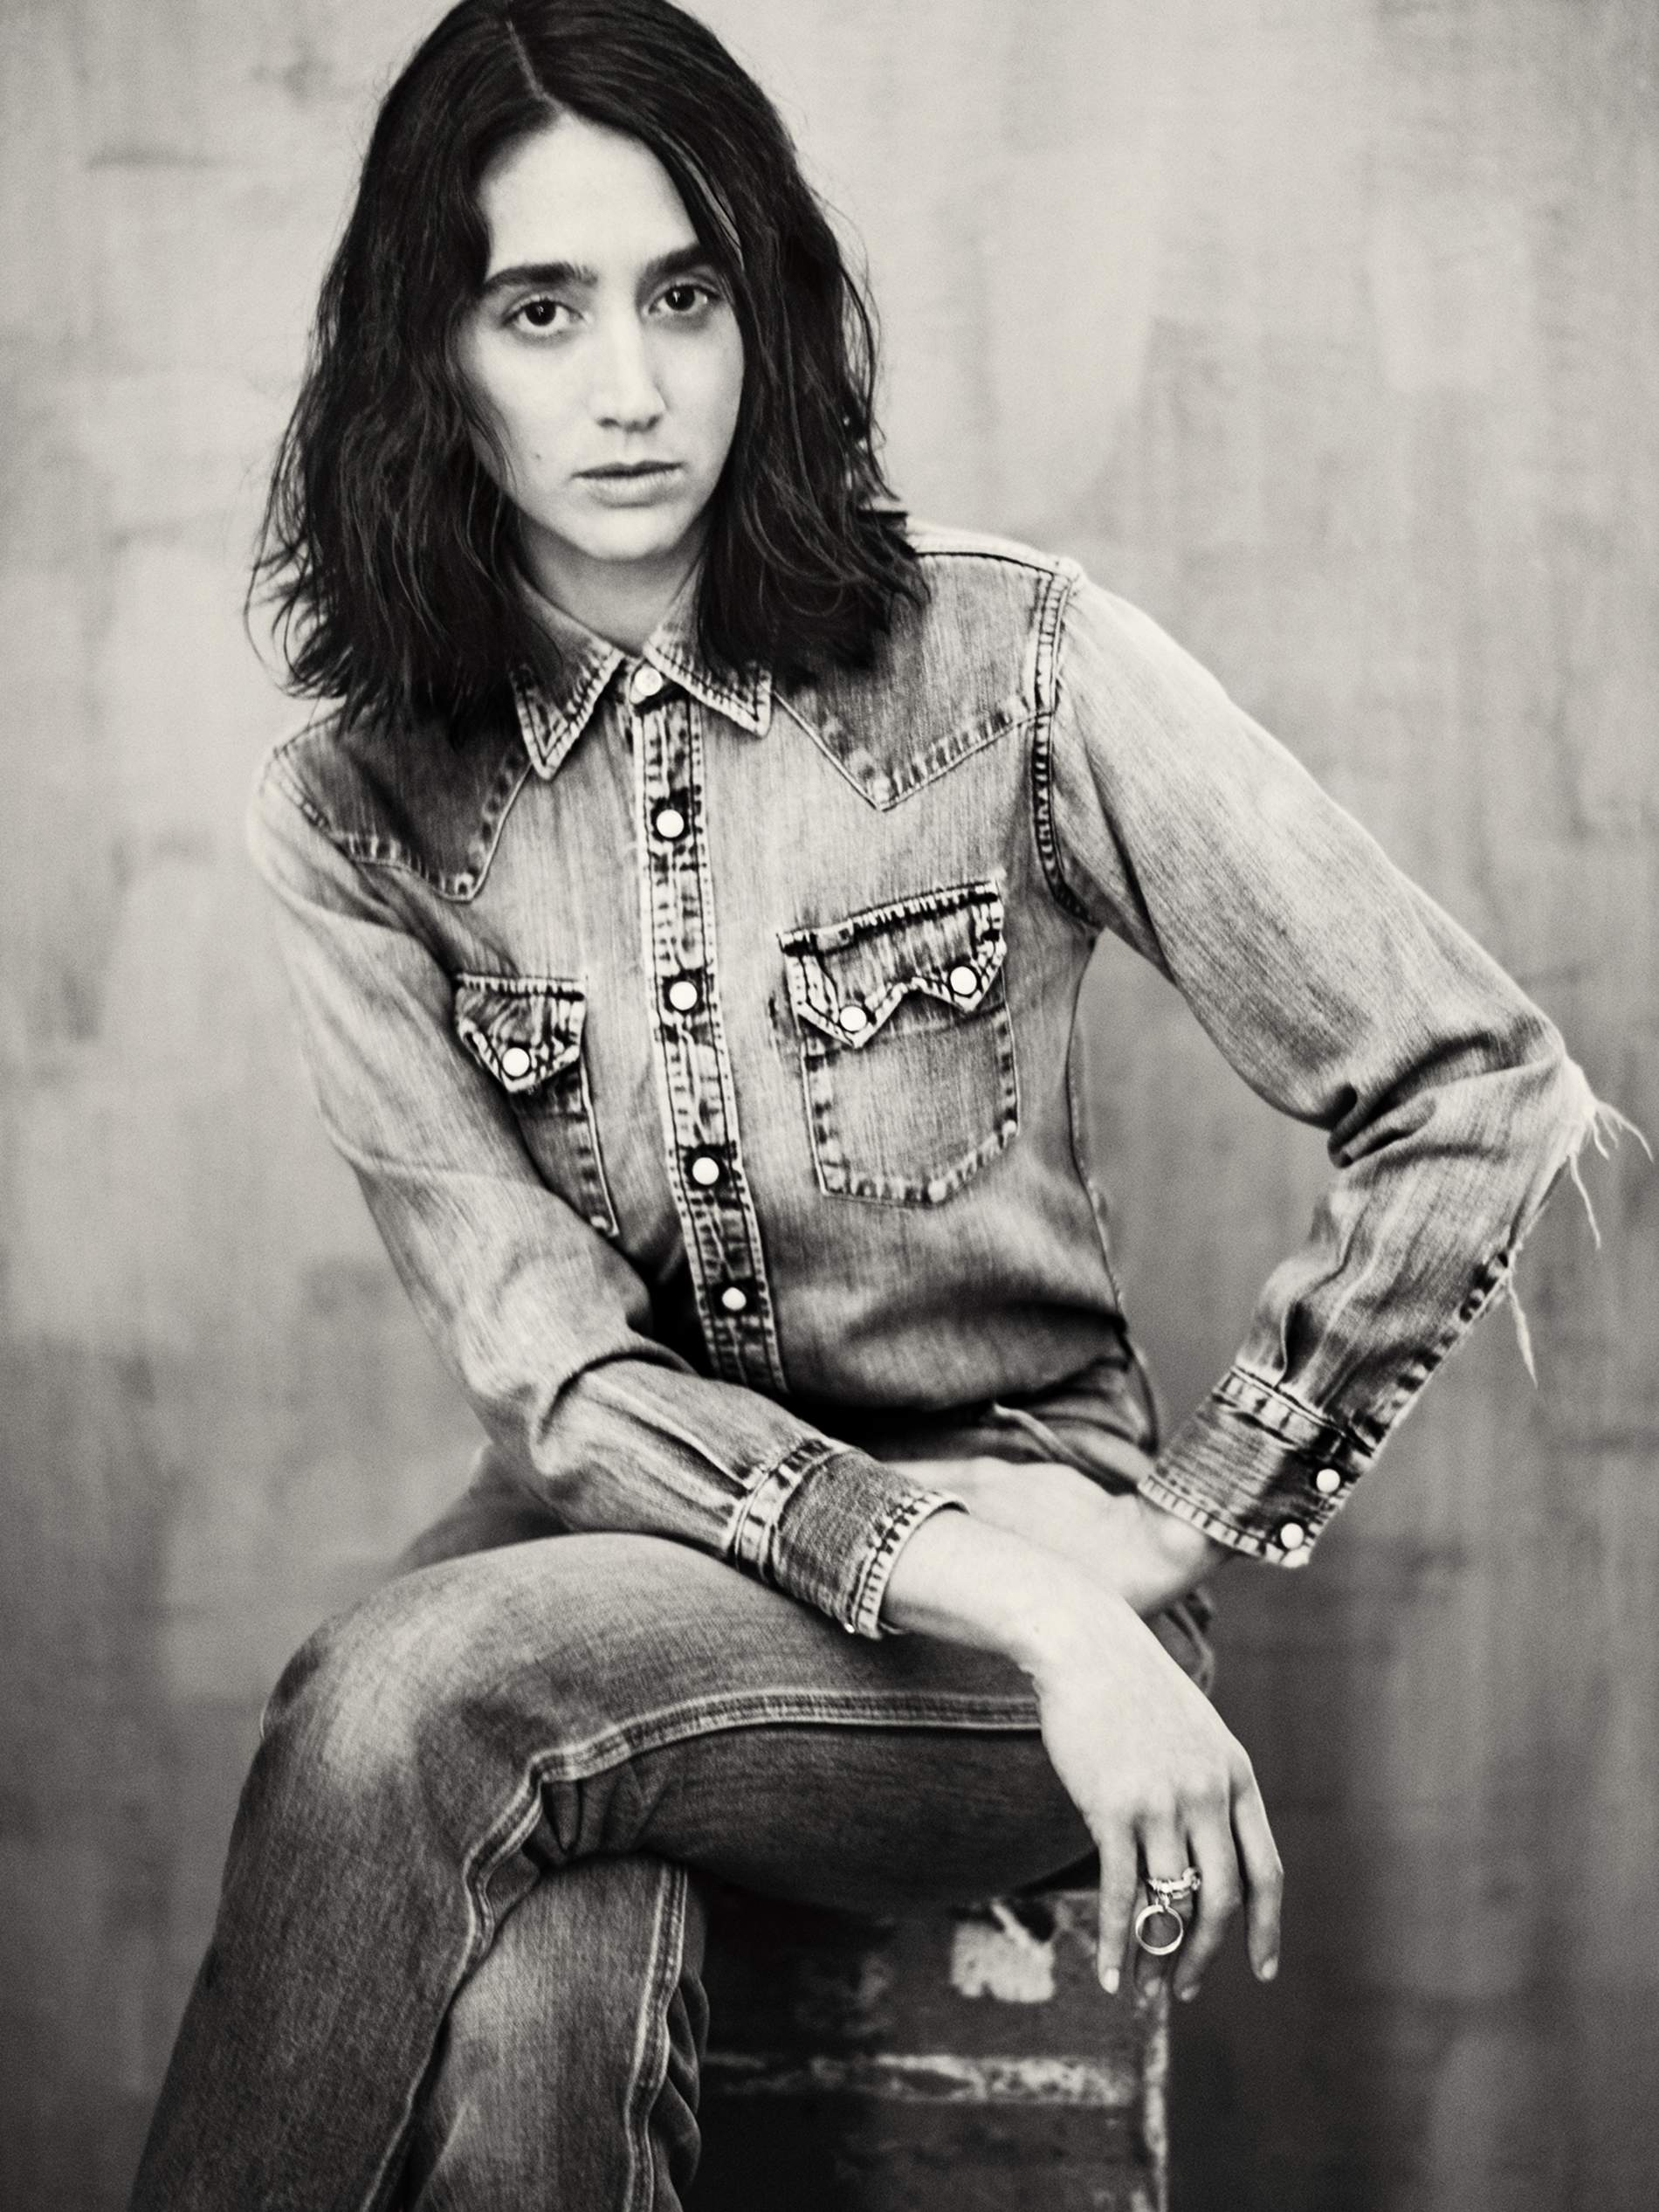 e6d9dff2bdd Chloé  5 Things To Love About The New Season Collection. The brand s new  Creative Director